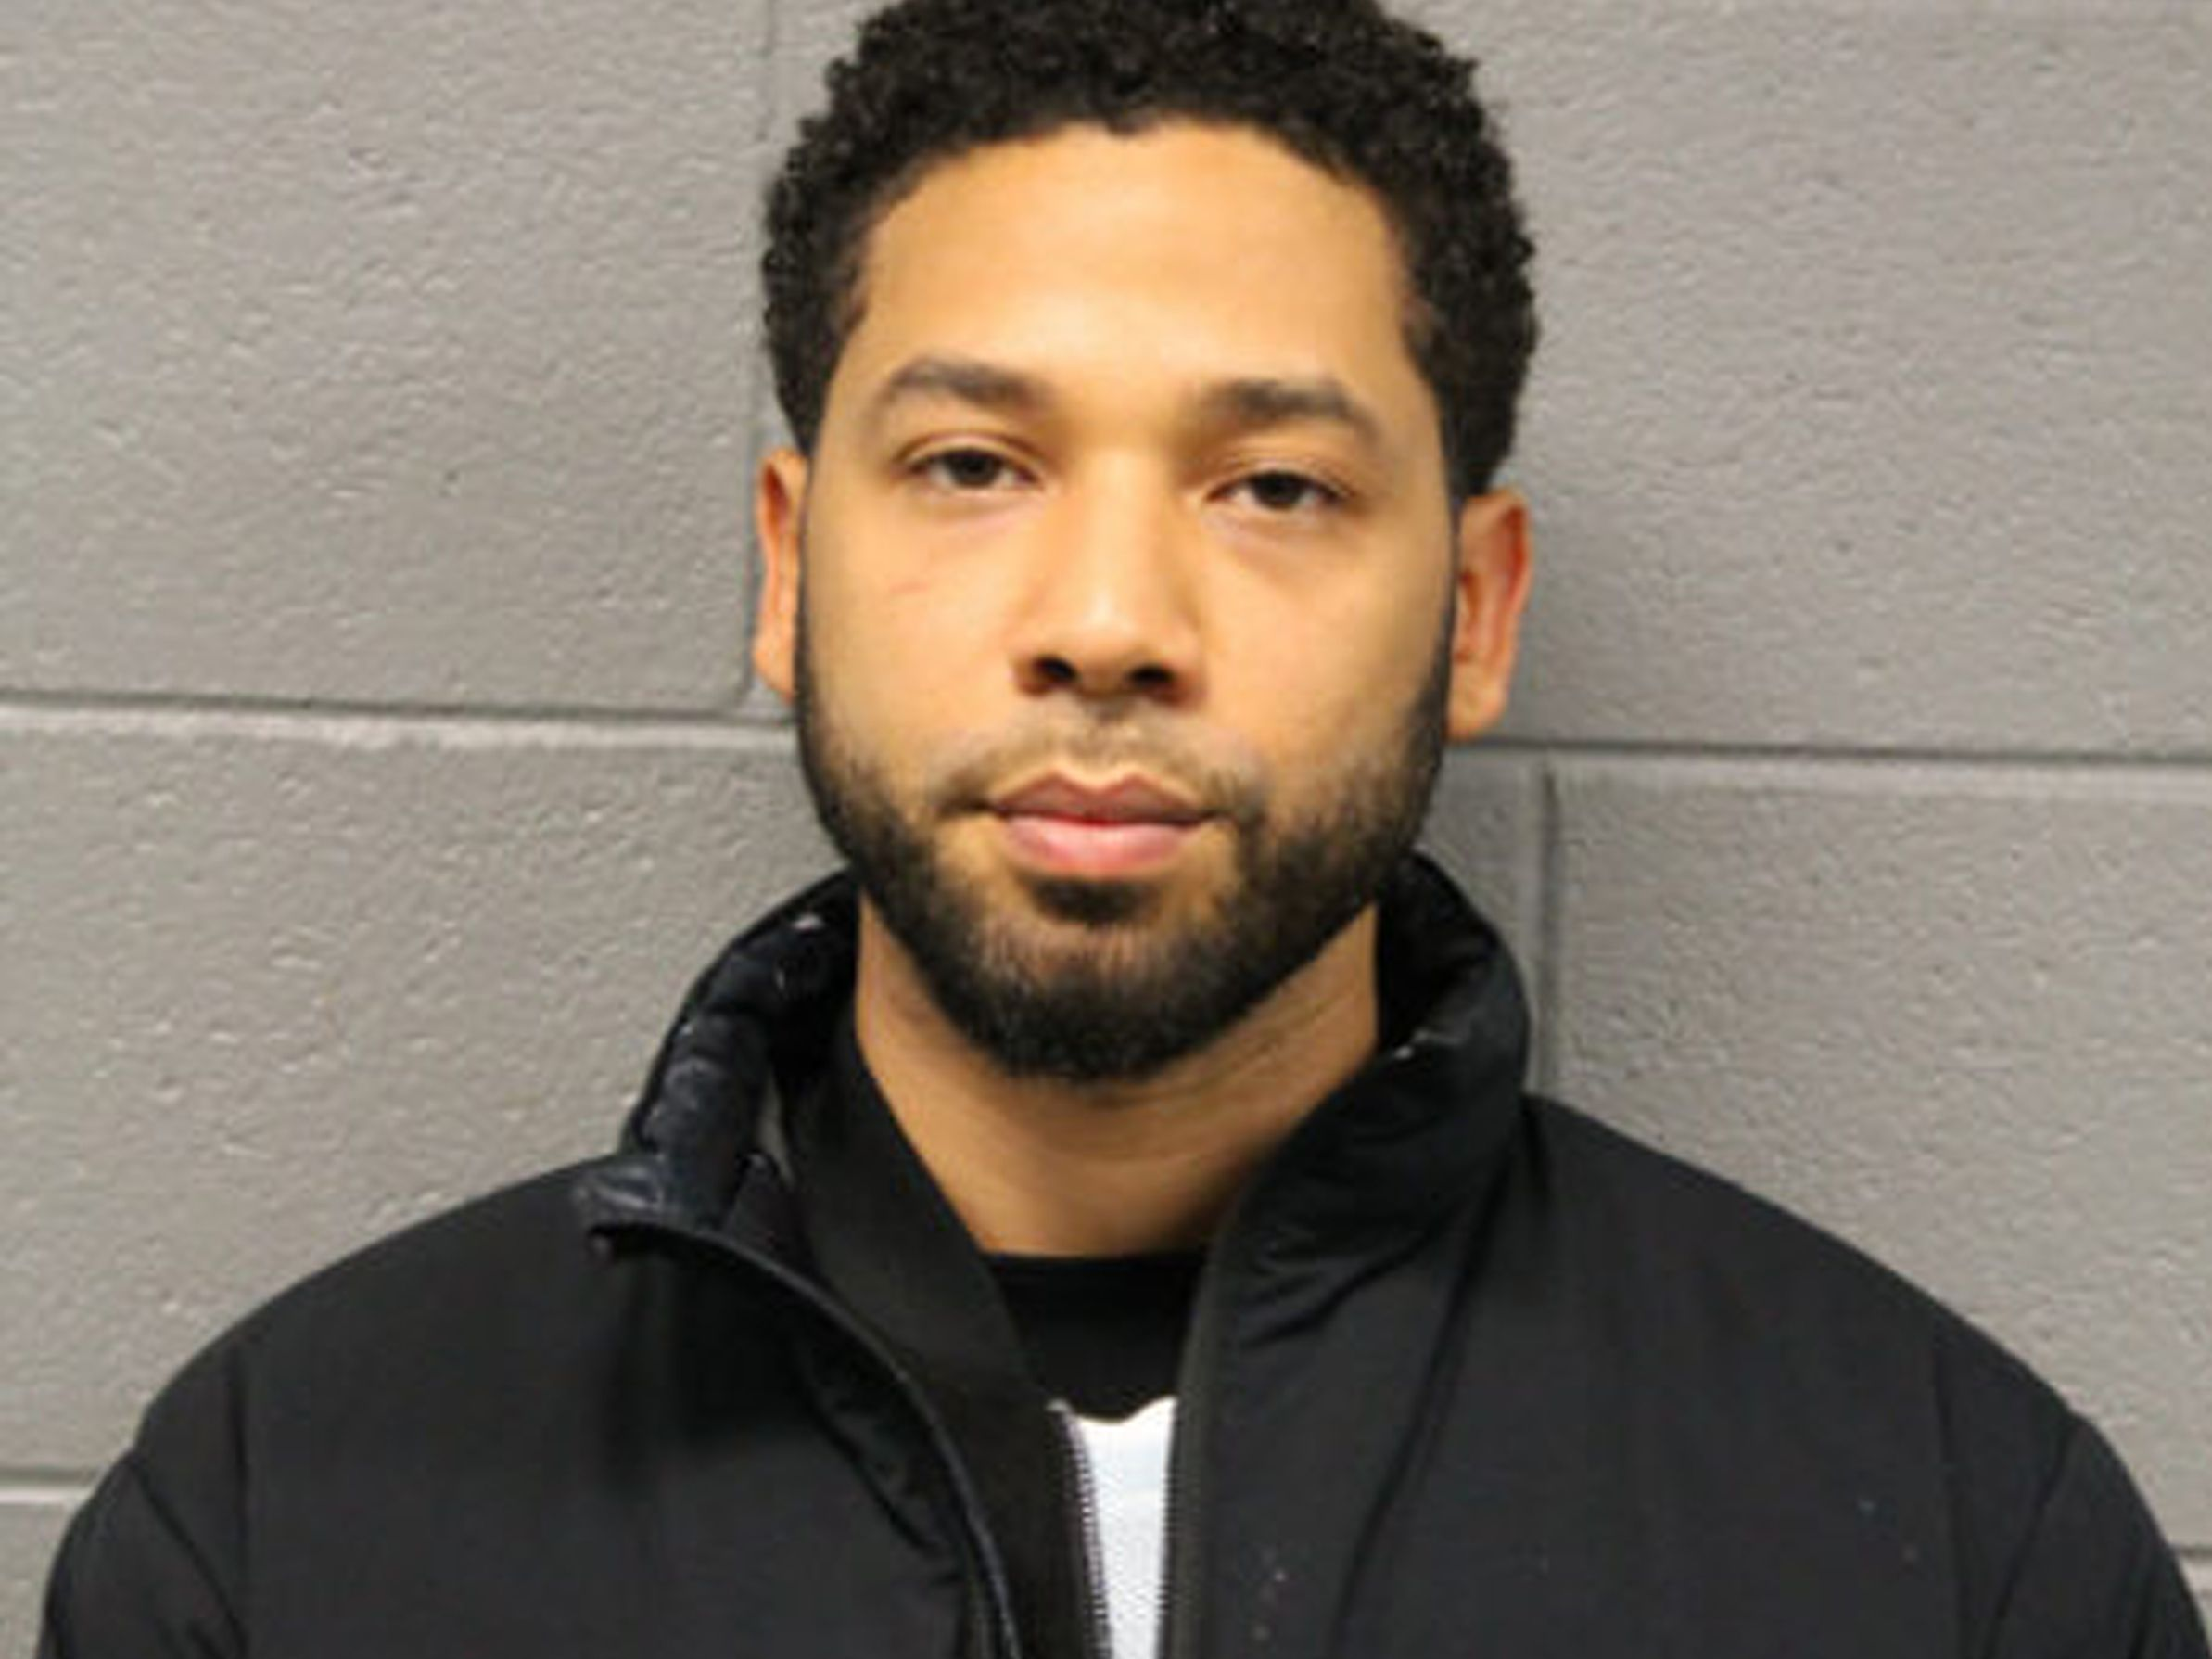 Police: 'Empire' actor Jussie Smollett faked attack to 'promote his career'